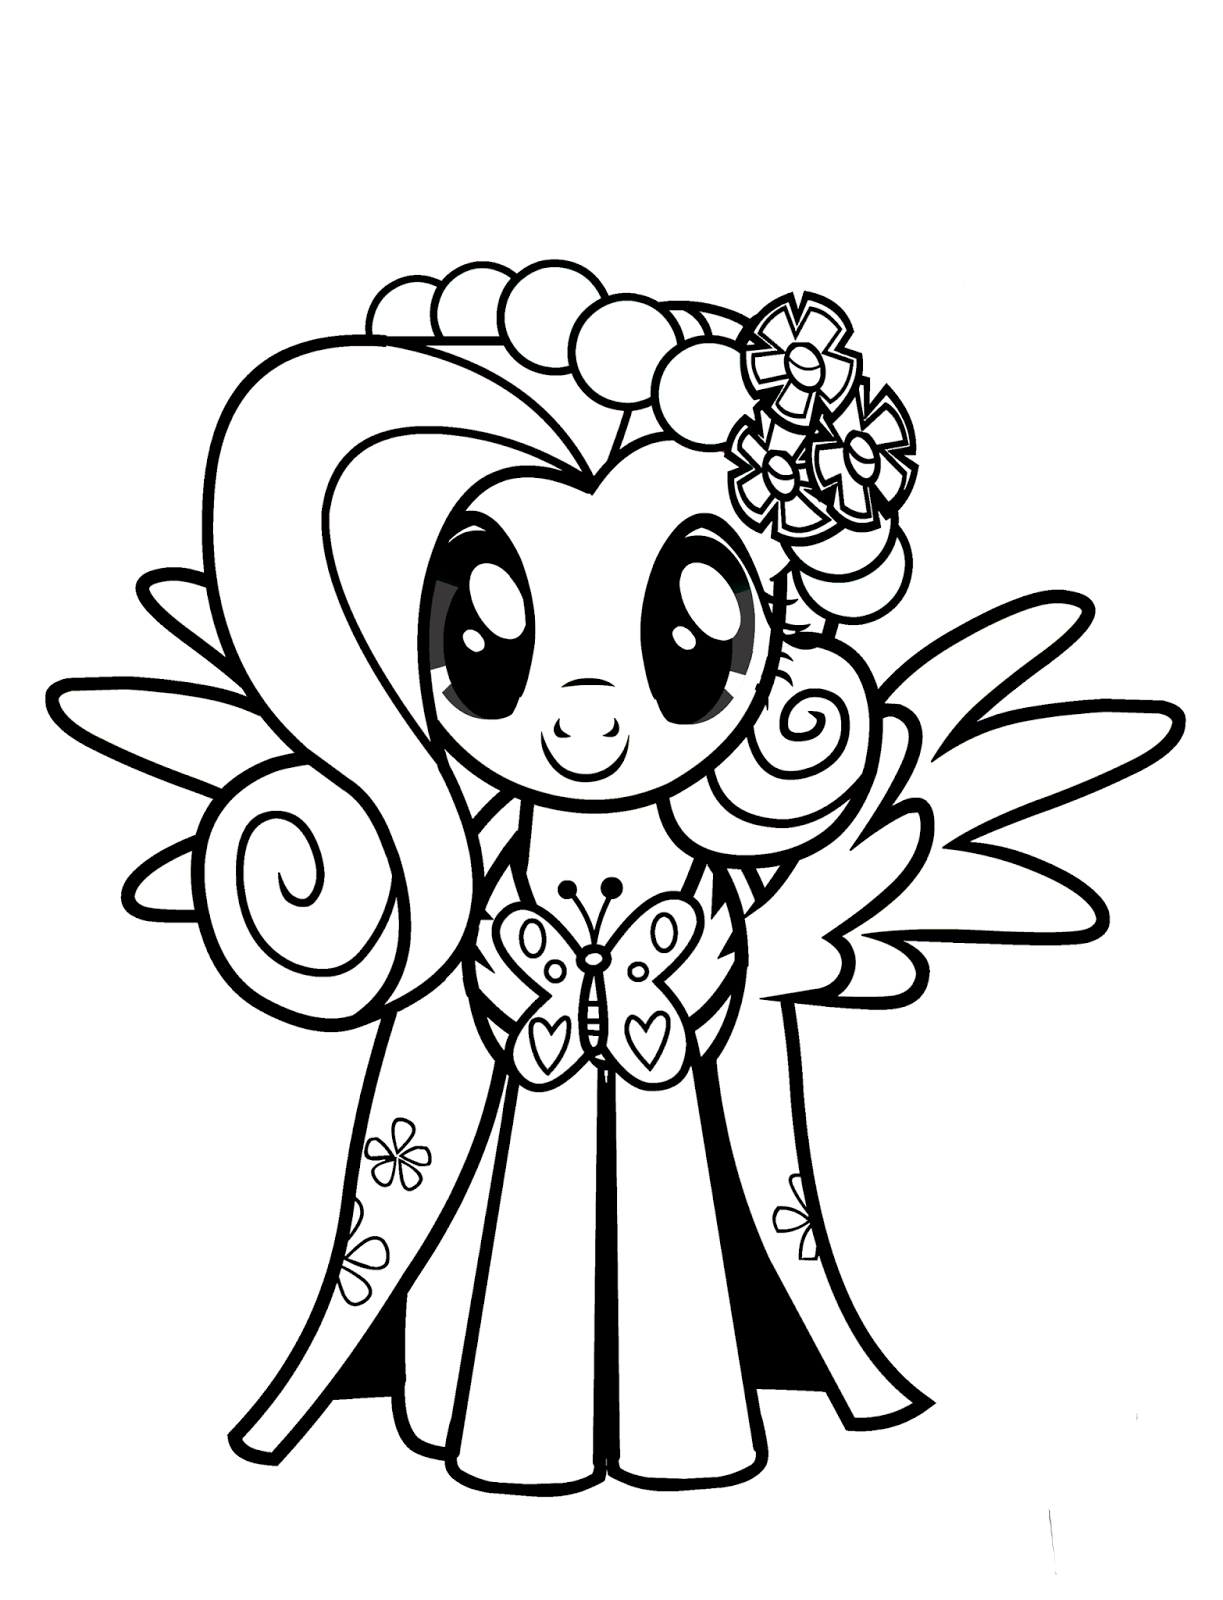 my little pony colors my little pony coloring pages for girls print for free or pony little my colors